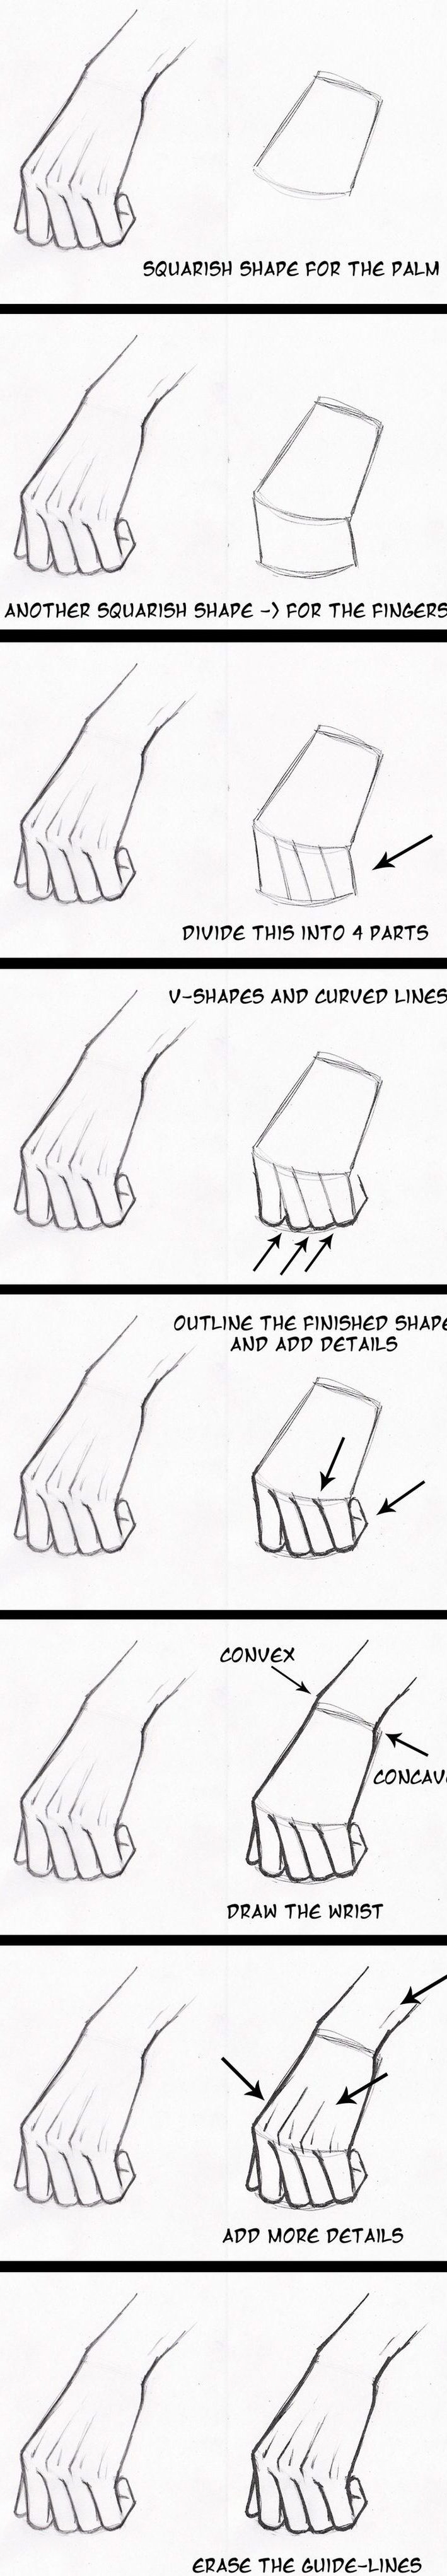 How to Draw Hands Step by Step